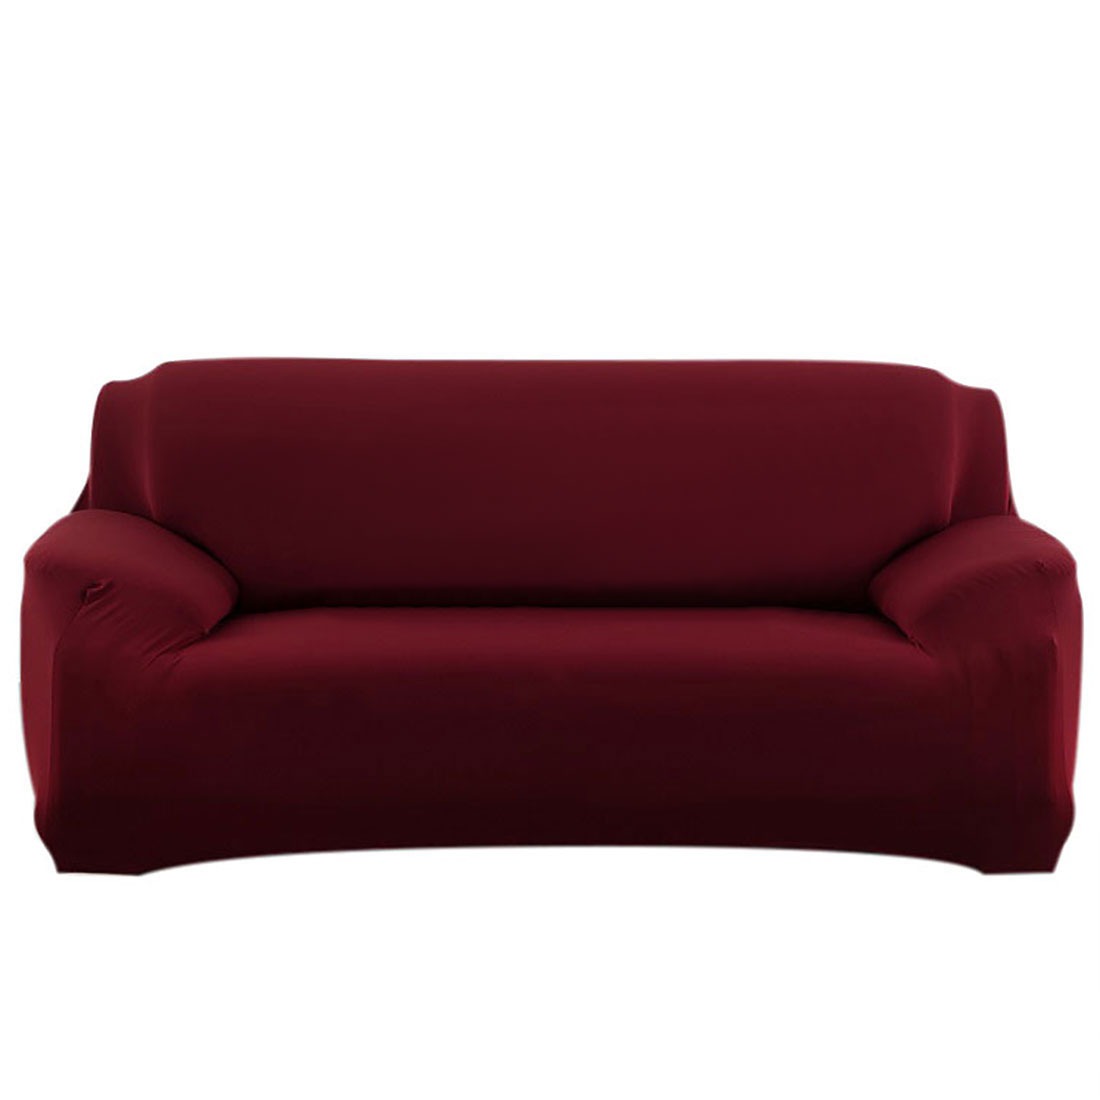 Home Furniture Sofa Couch Stretch Cover Protector Burgundy 74''-90''